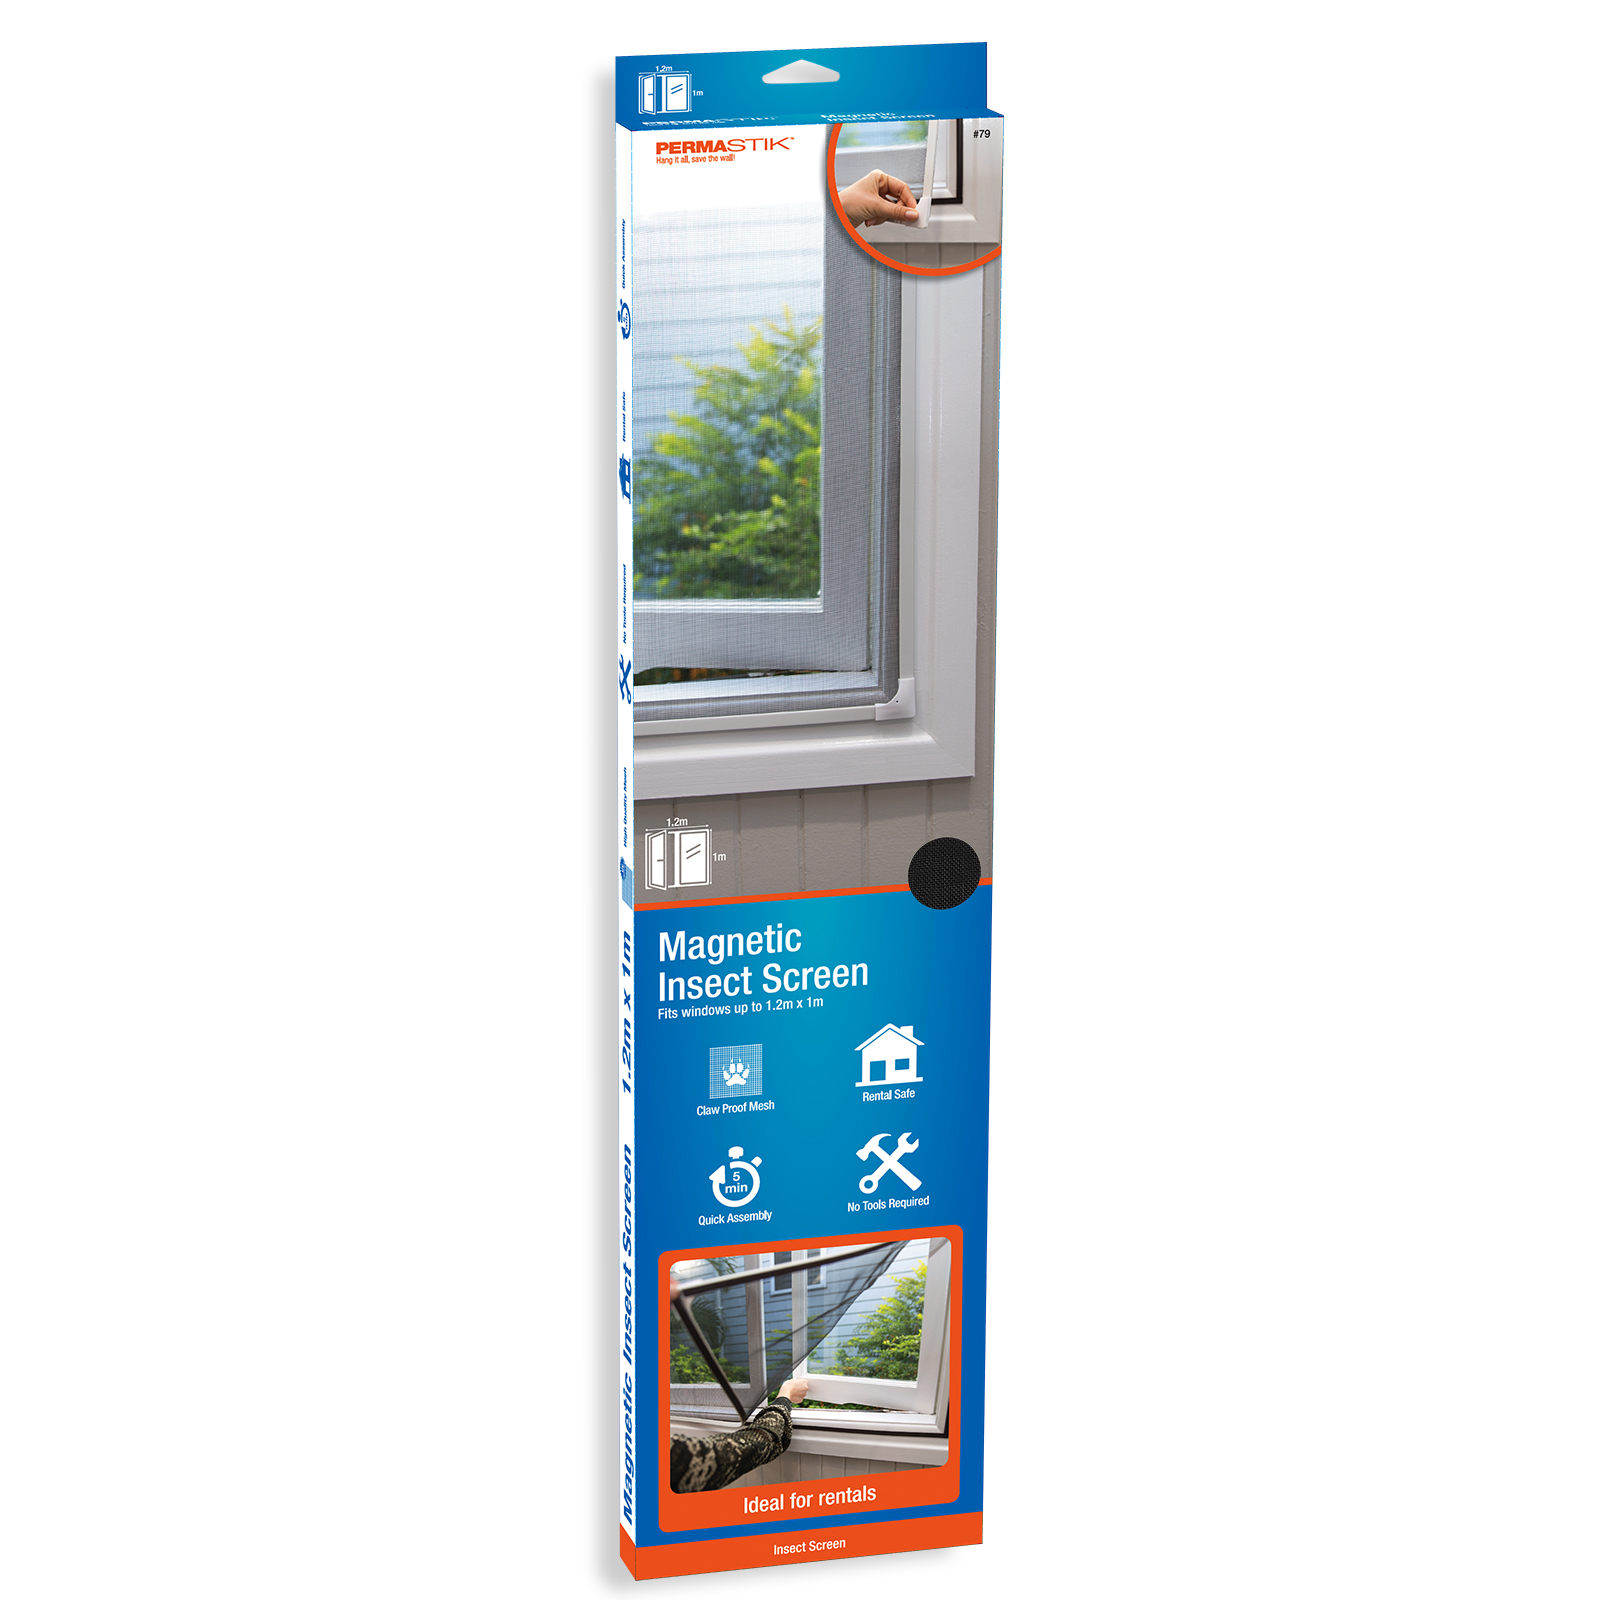 PermaStik Magnetic Insect Screen, Suitable for Windows up to 47.2 in x 39.3 in, Or cut down to suit smaller windows, Adhesive Mounting, Full Magnetic Seal, Durable Fly Screen Mesh